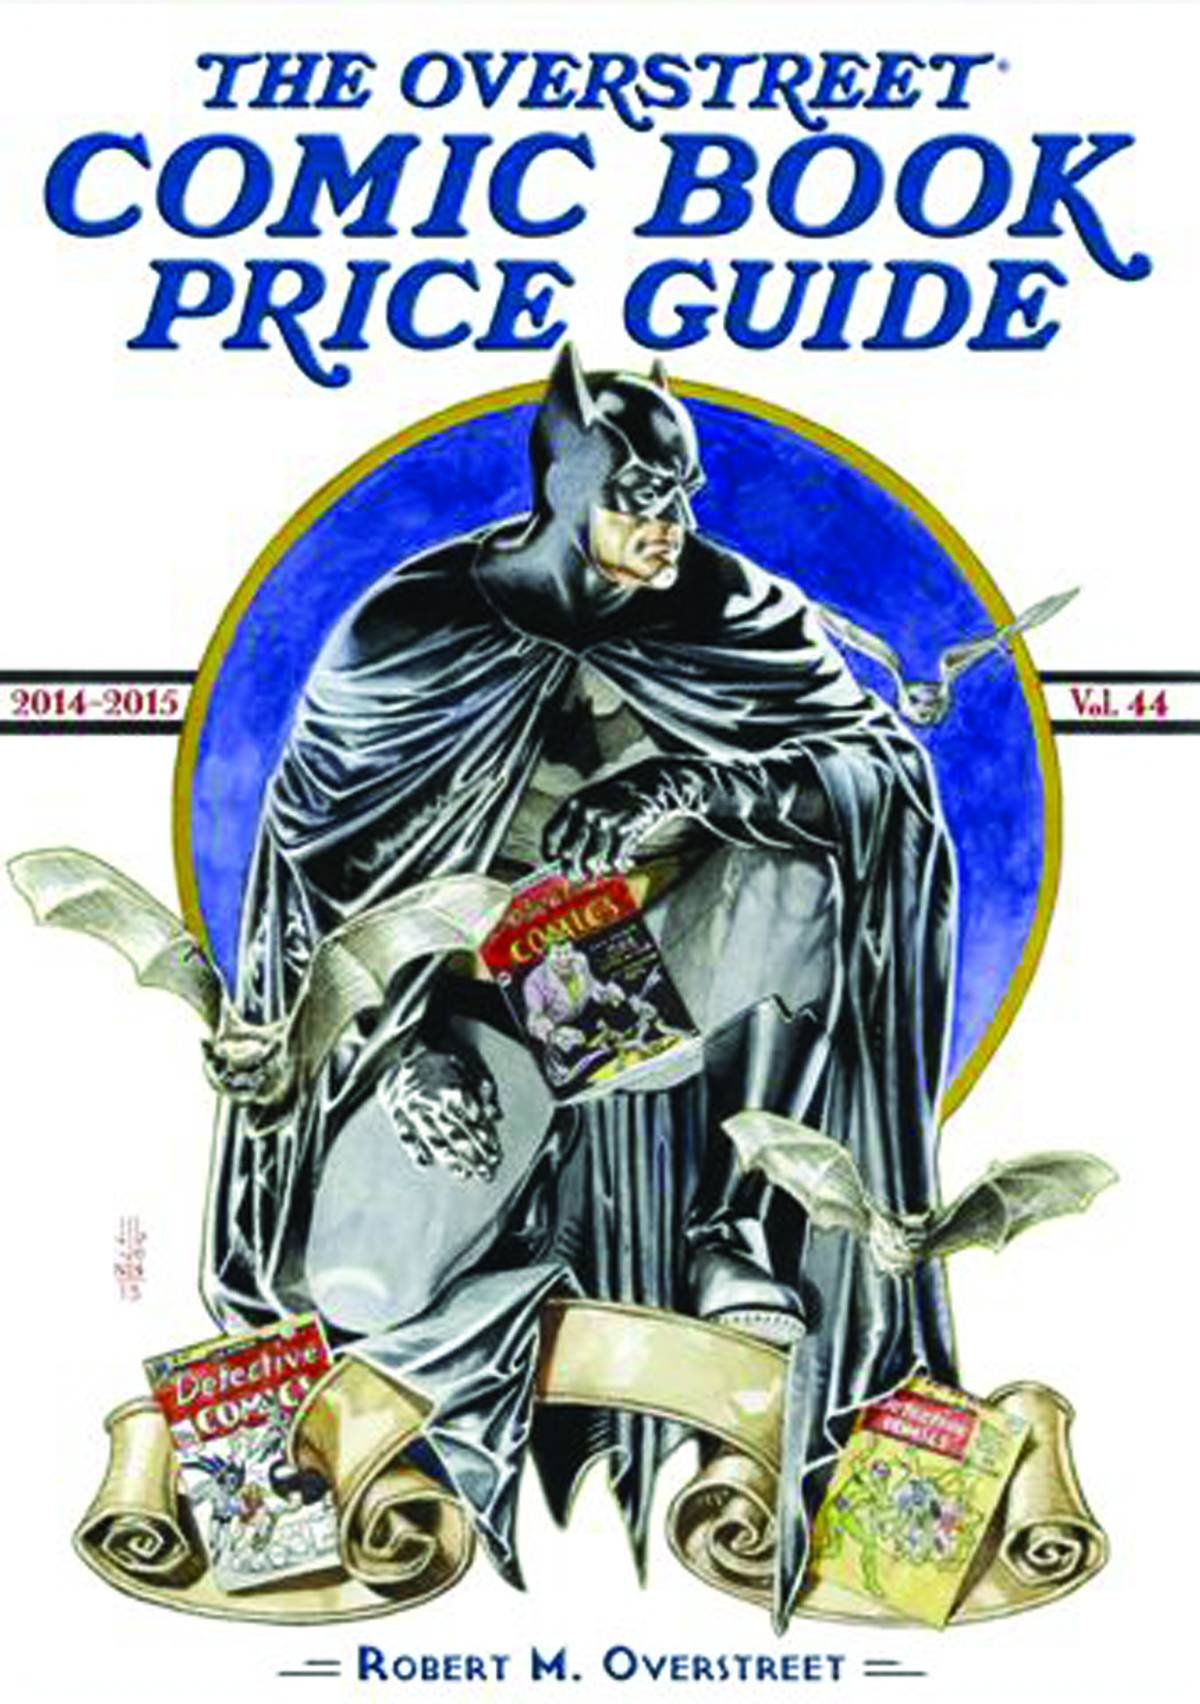 overstreet comic book price guide volume 44 robert m overstreet rh amazon com Robert M. Overstreet 2012 Overstreet Price Guide